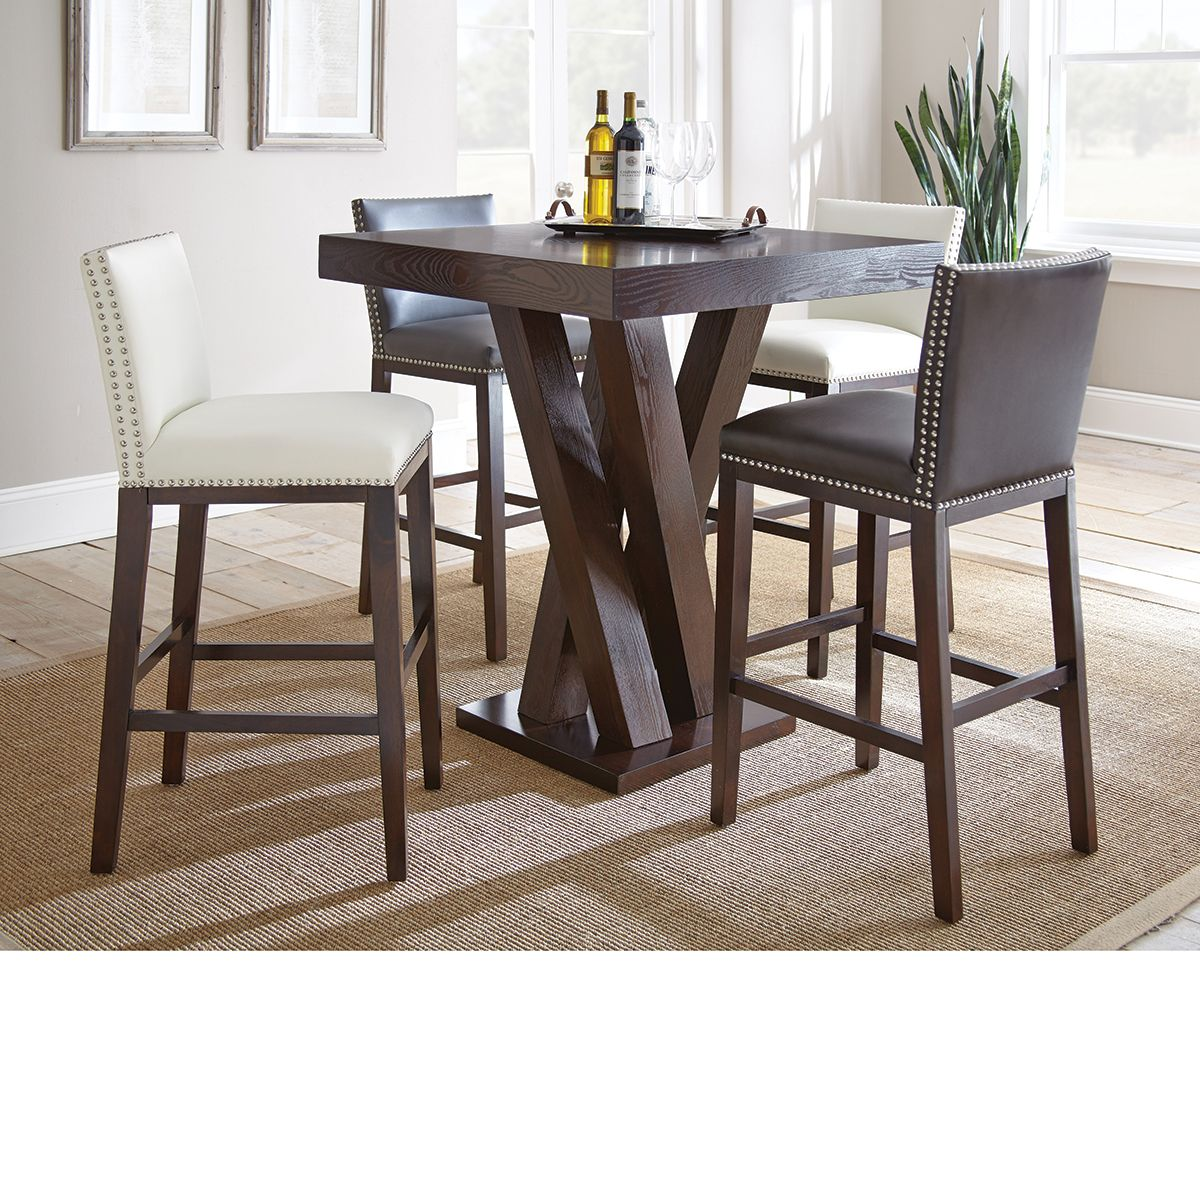 The Dump Luxe Furniture Outlet Dining Table Pub Table Sets Bar Table Sets [ 1200 x 1200 Pixel ]